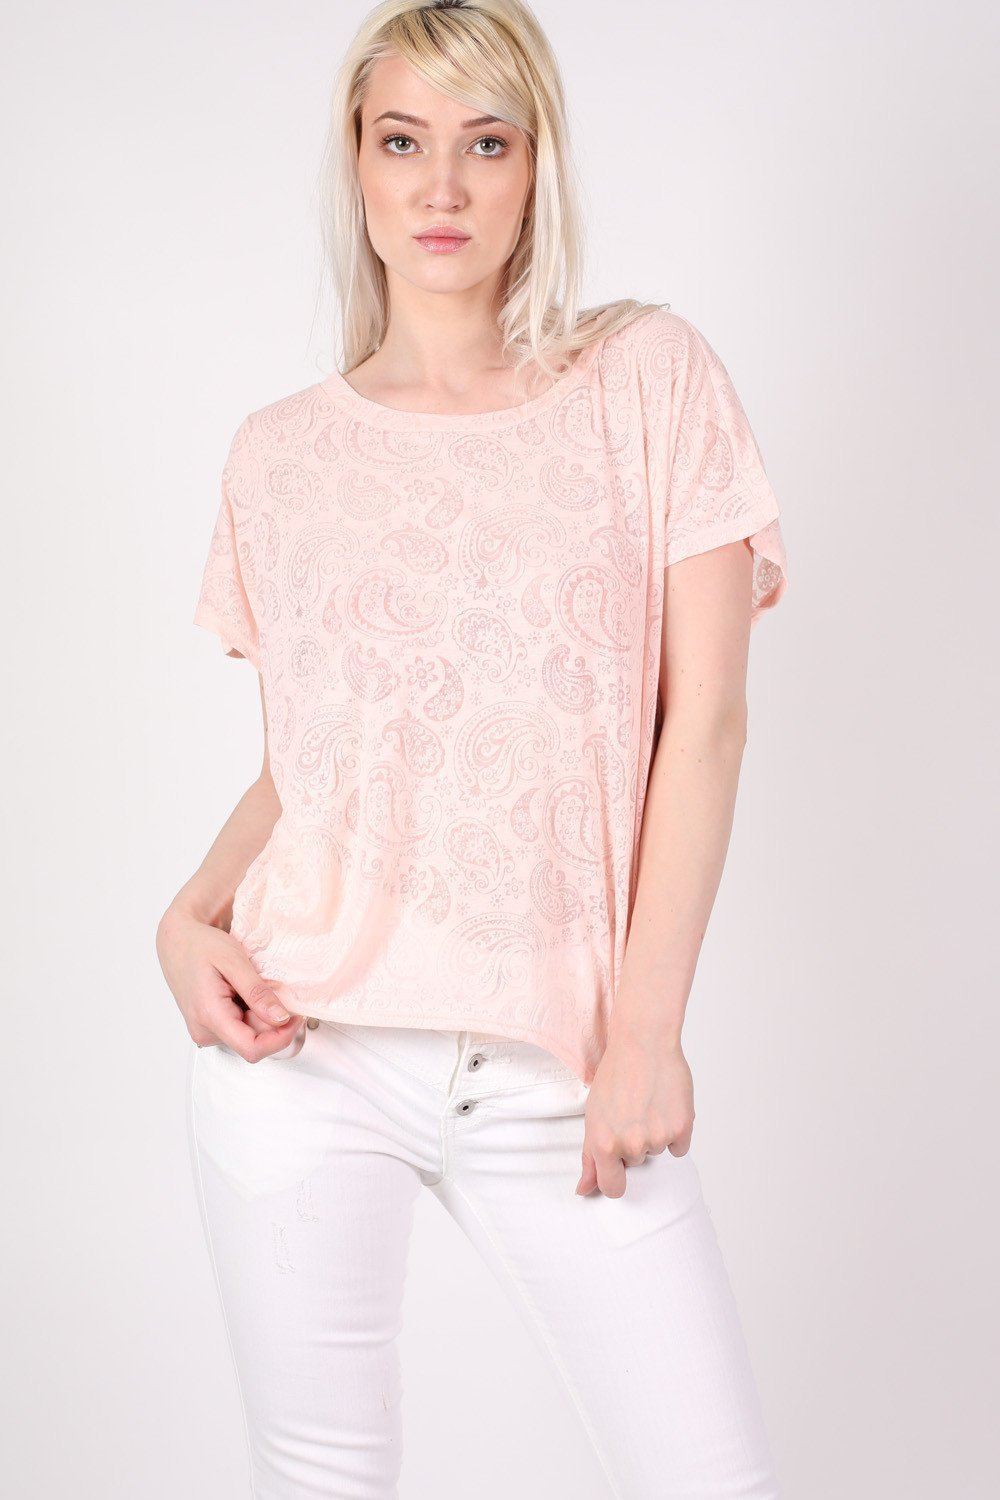 Burnout Paisley Print Oversized Top in Pink 0